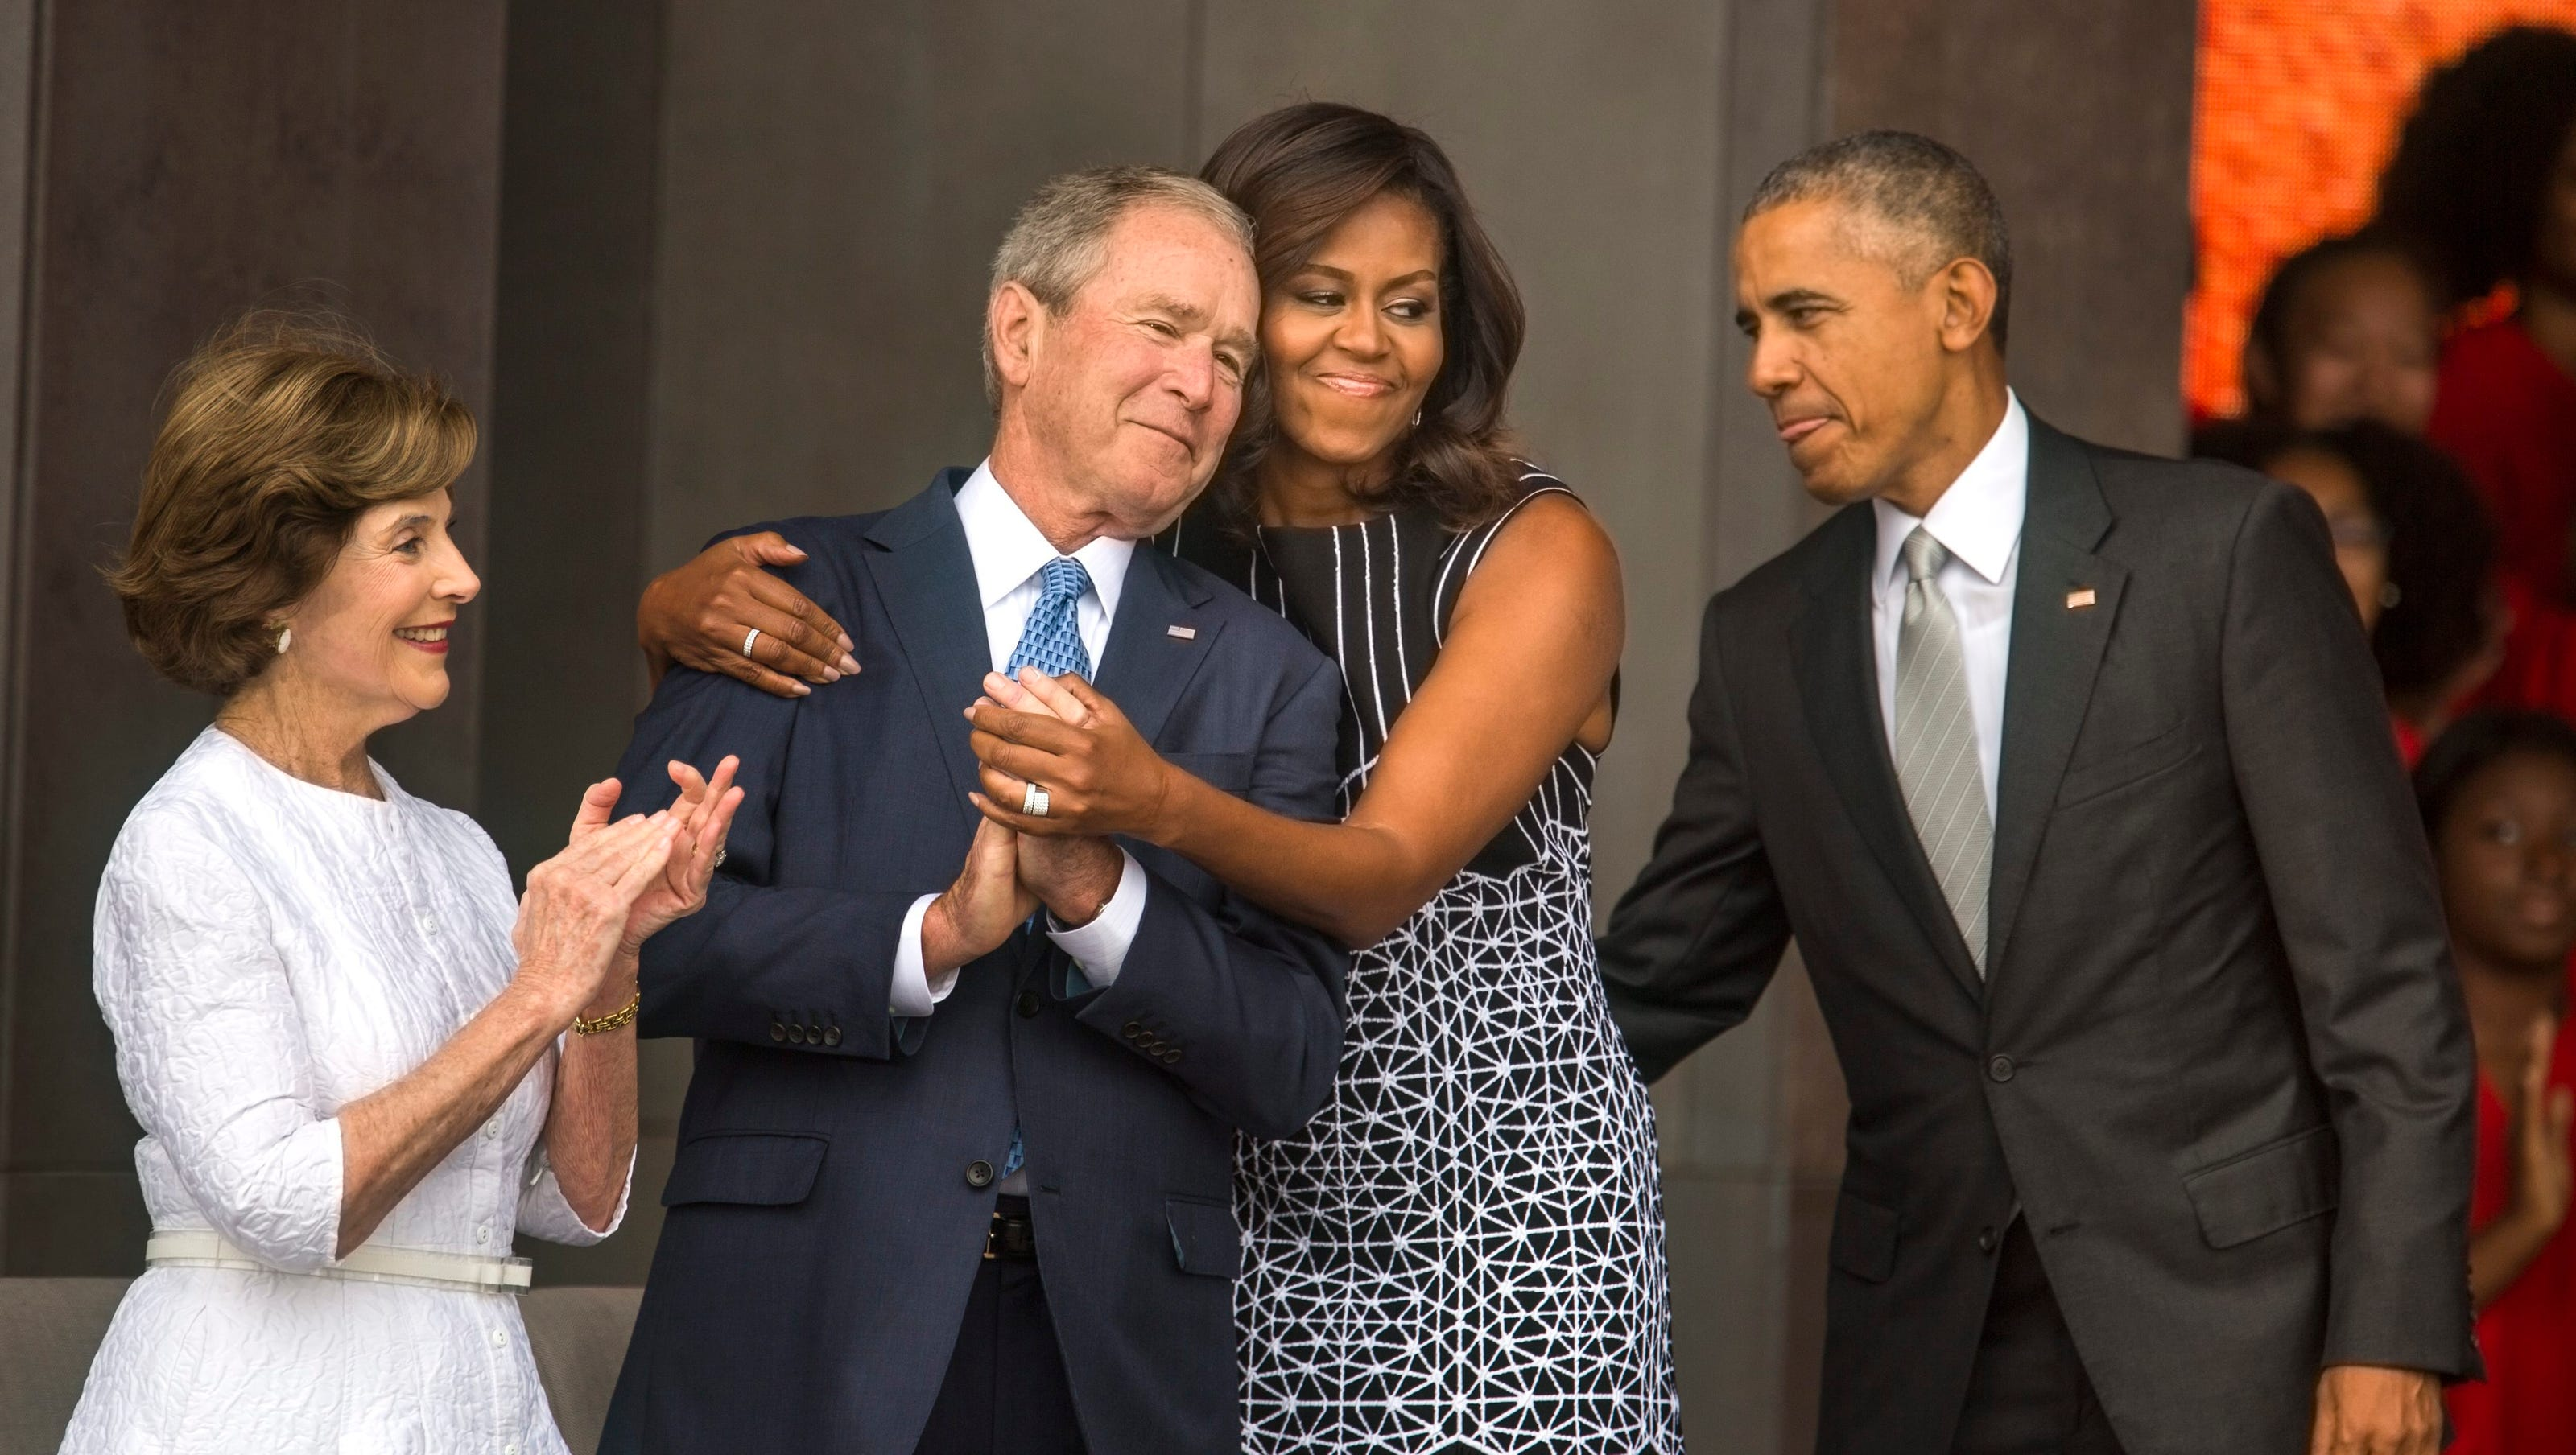 George W. Bush thinks it's a 'problem' that people can't understand his friendship with Michelle Obama